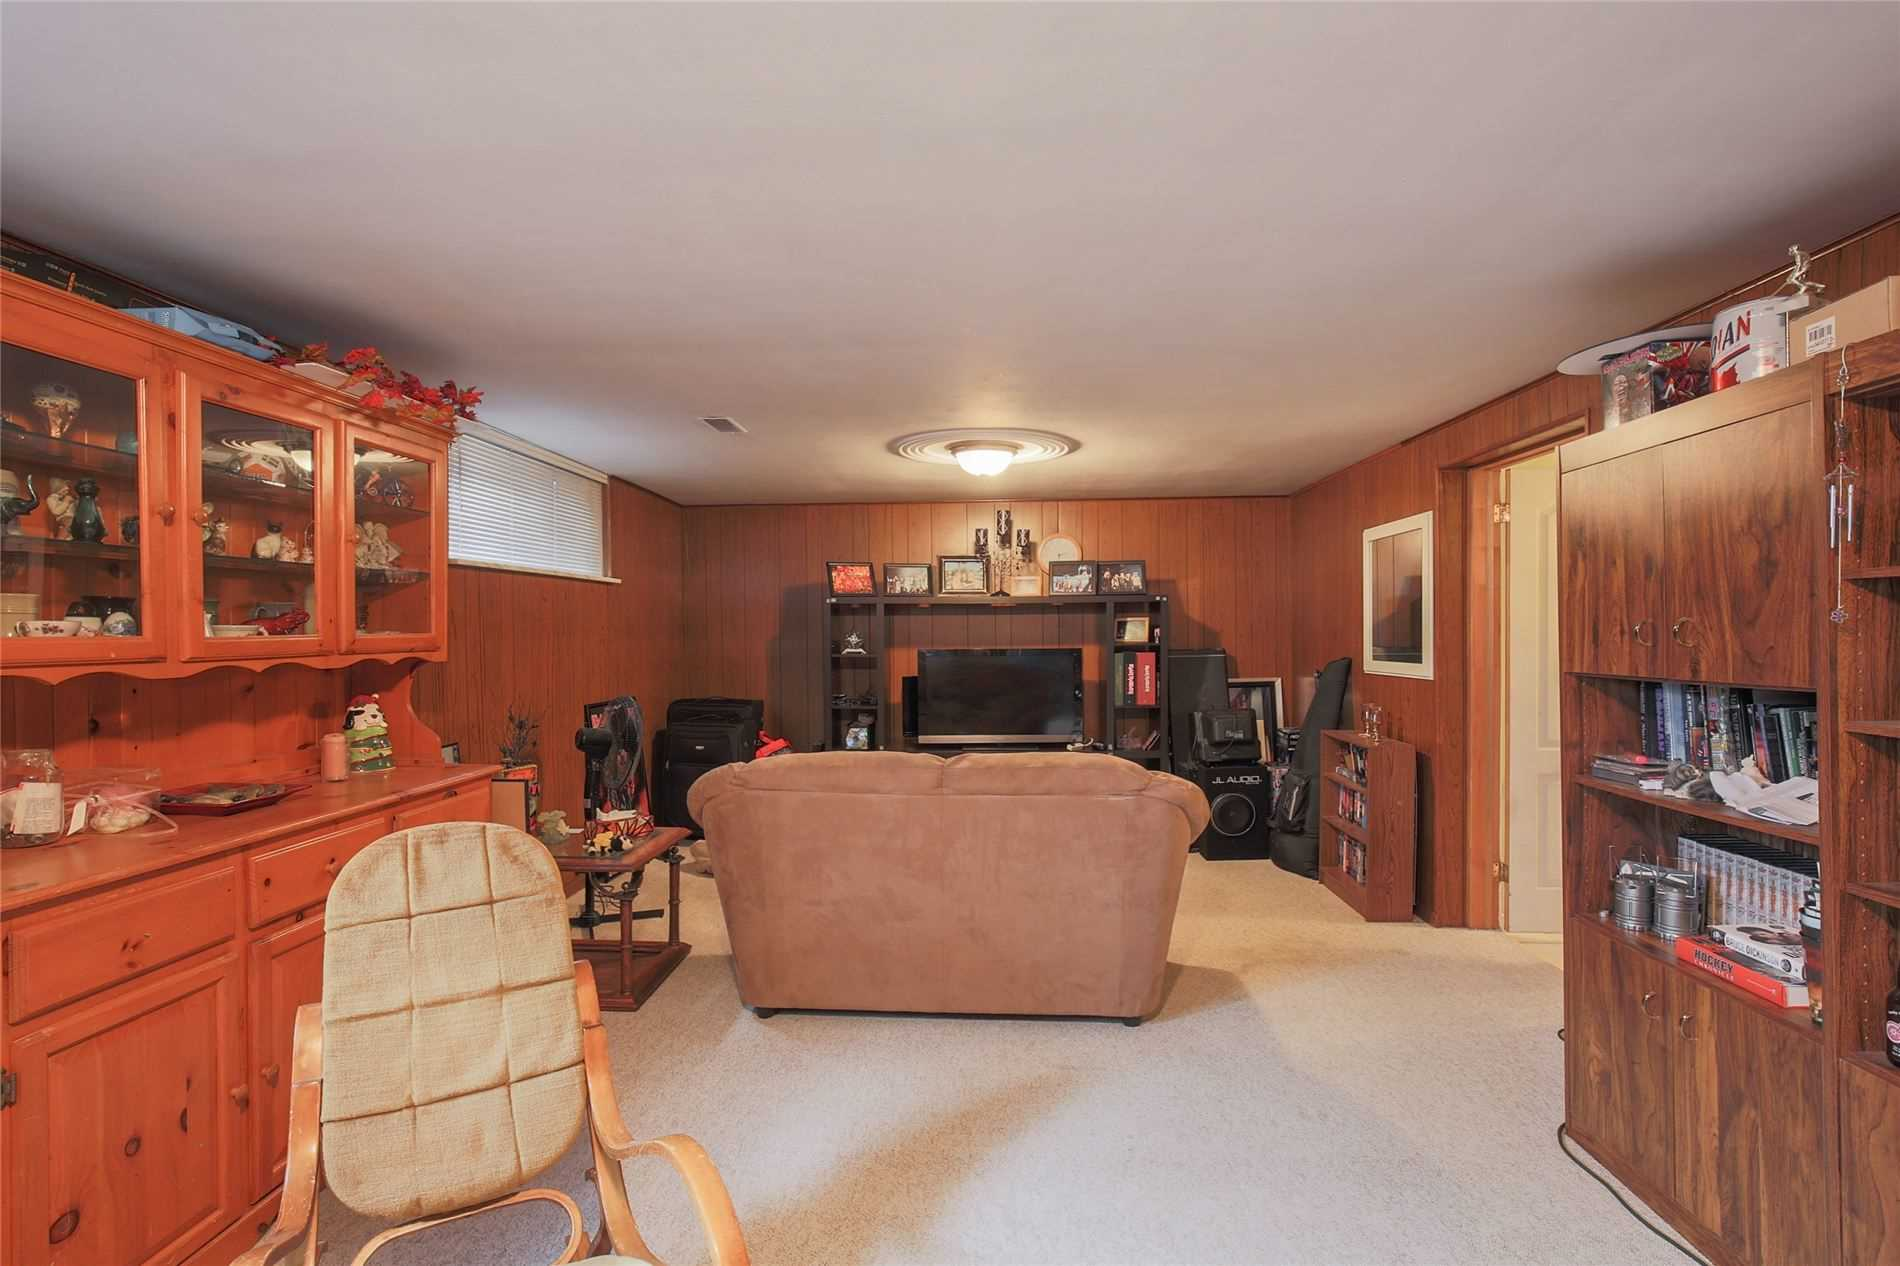 Listing W4851996 - Thumbmnail Photo # 24